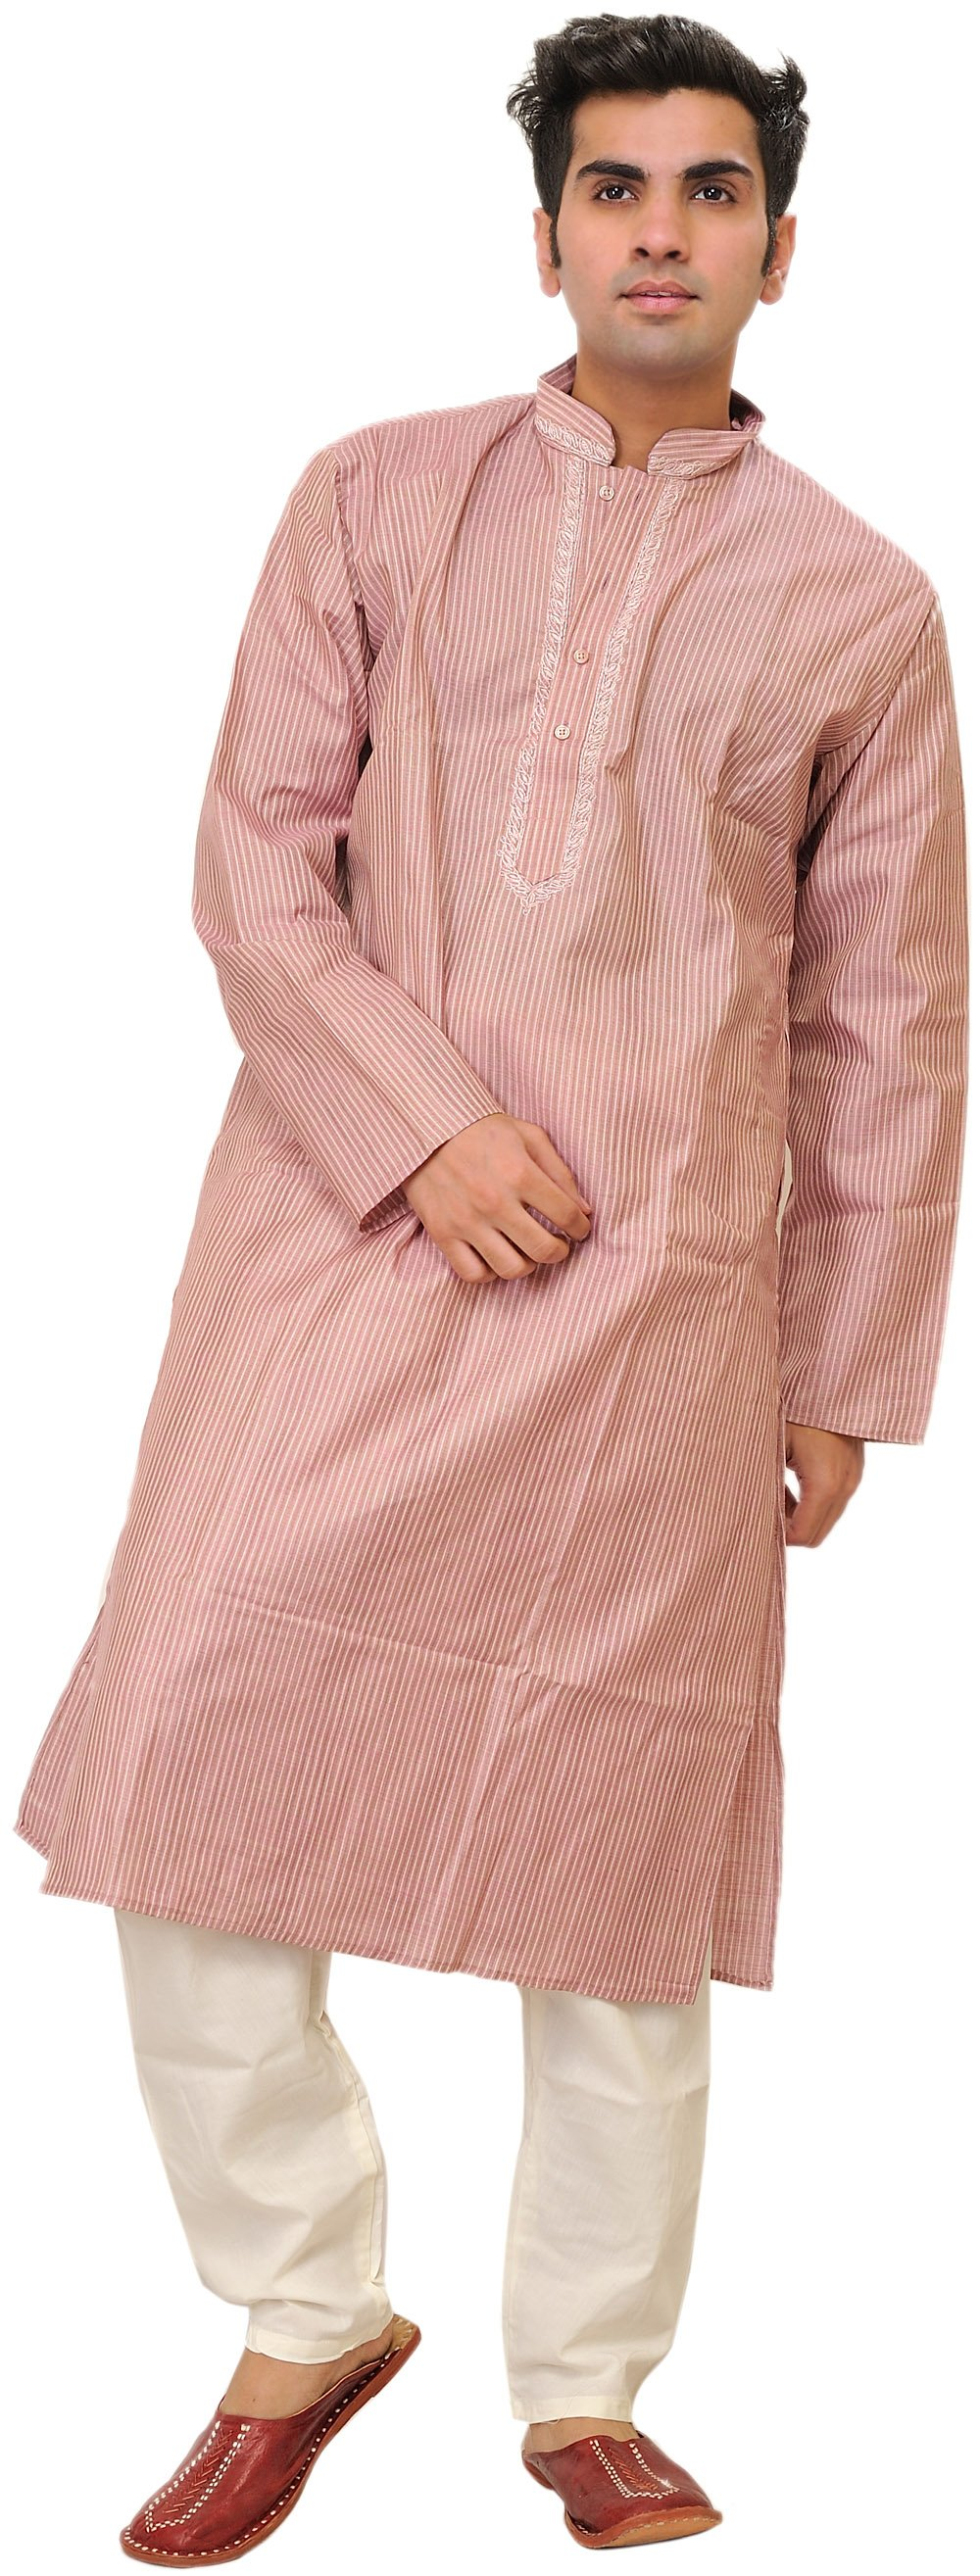 Zephyr Kurta Pajama With Embroidery On Neck And Woven Stripes